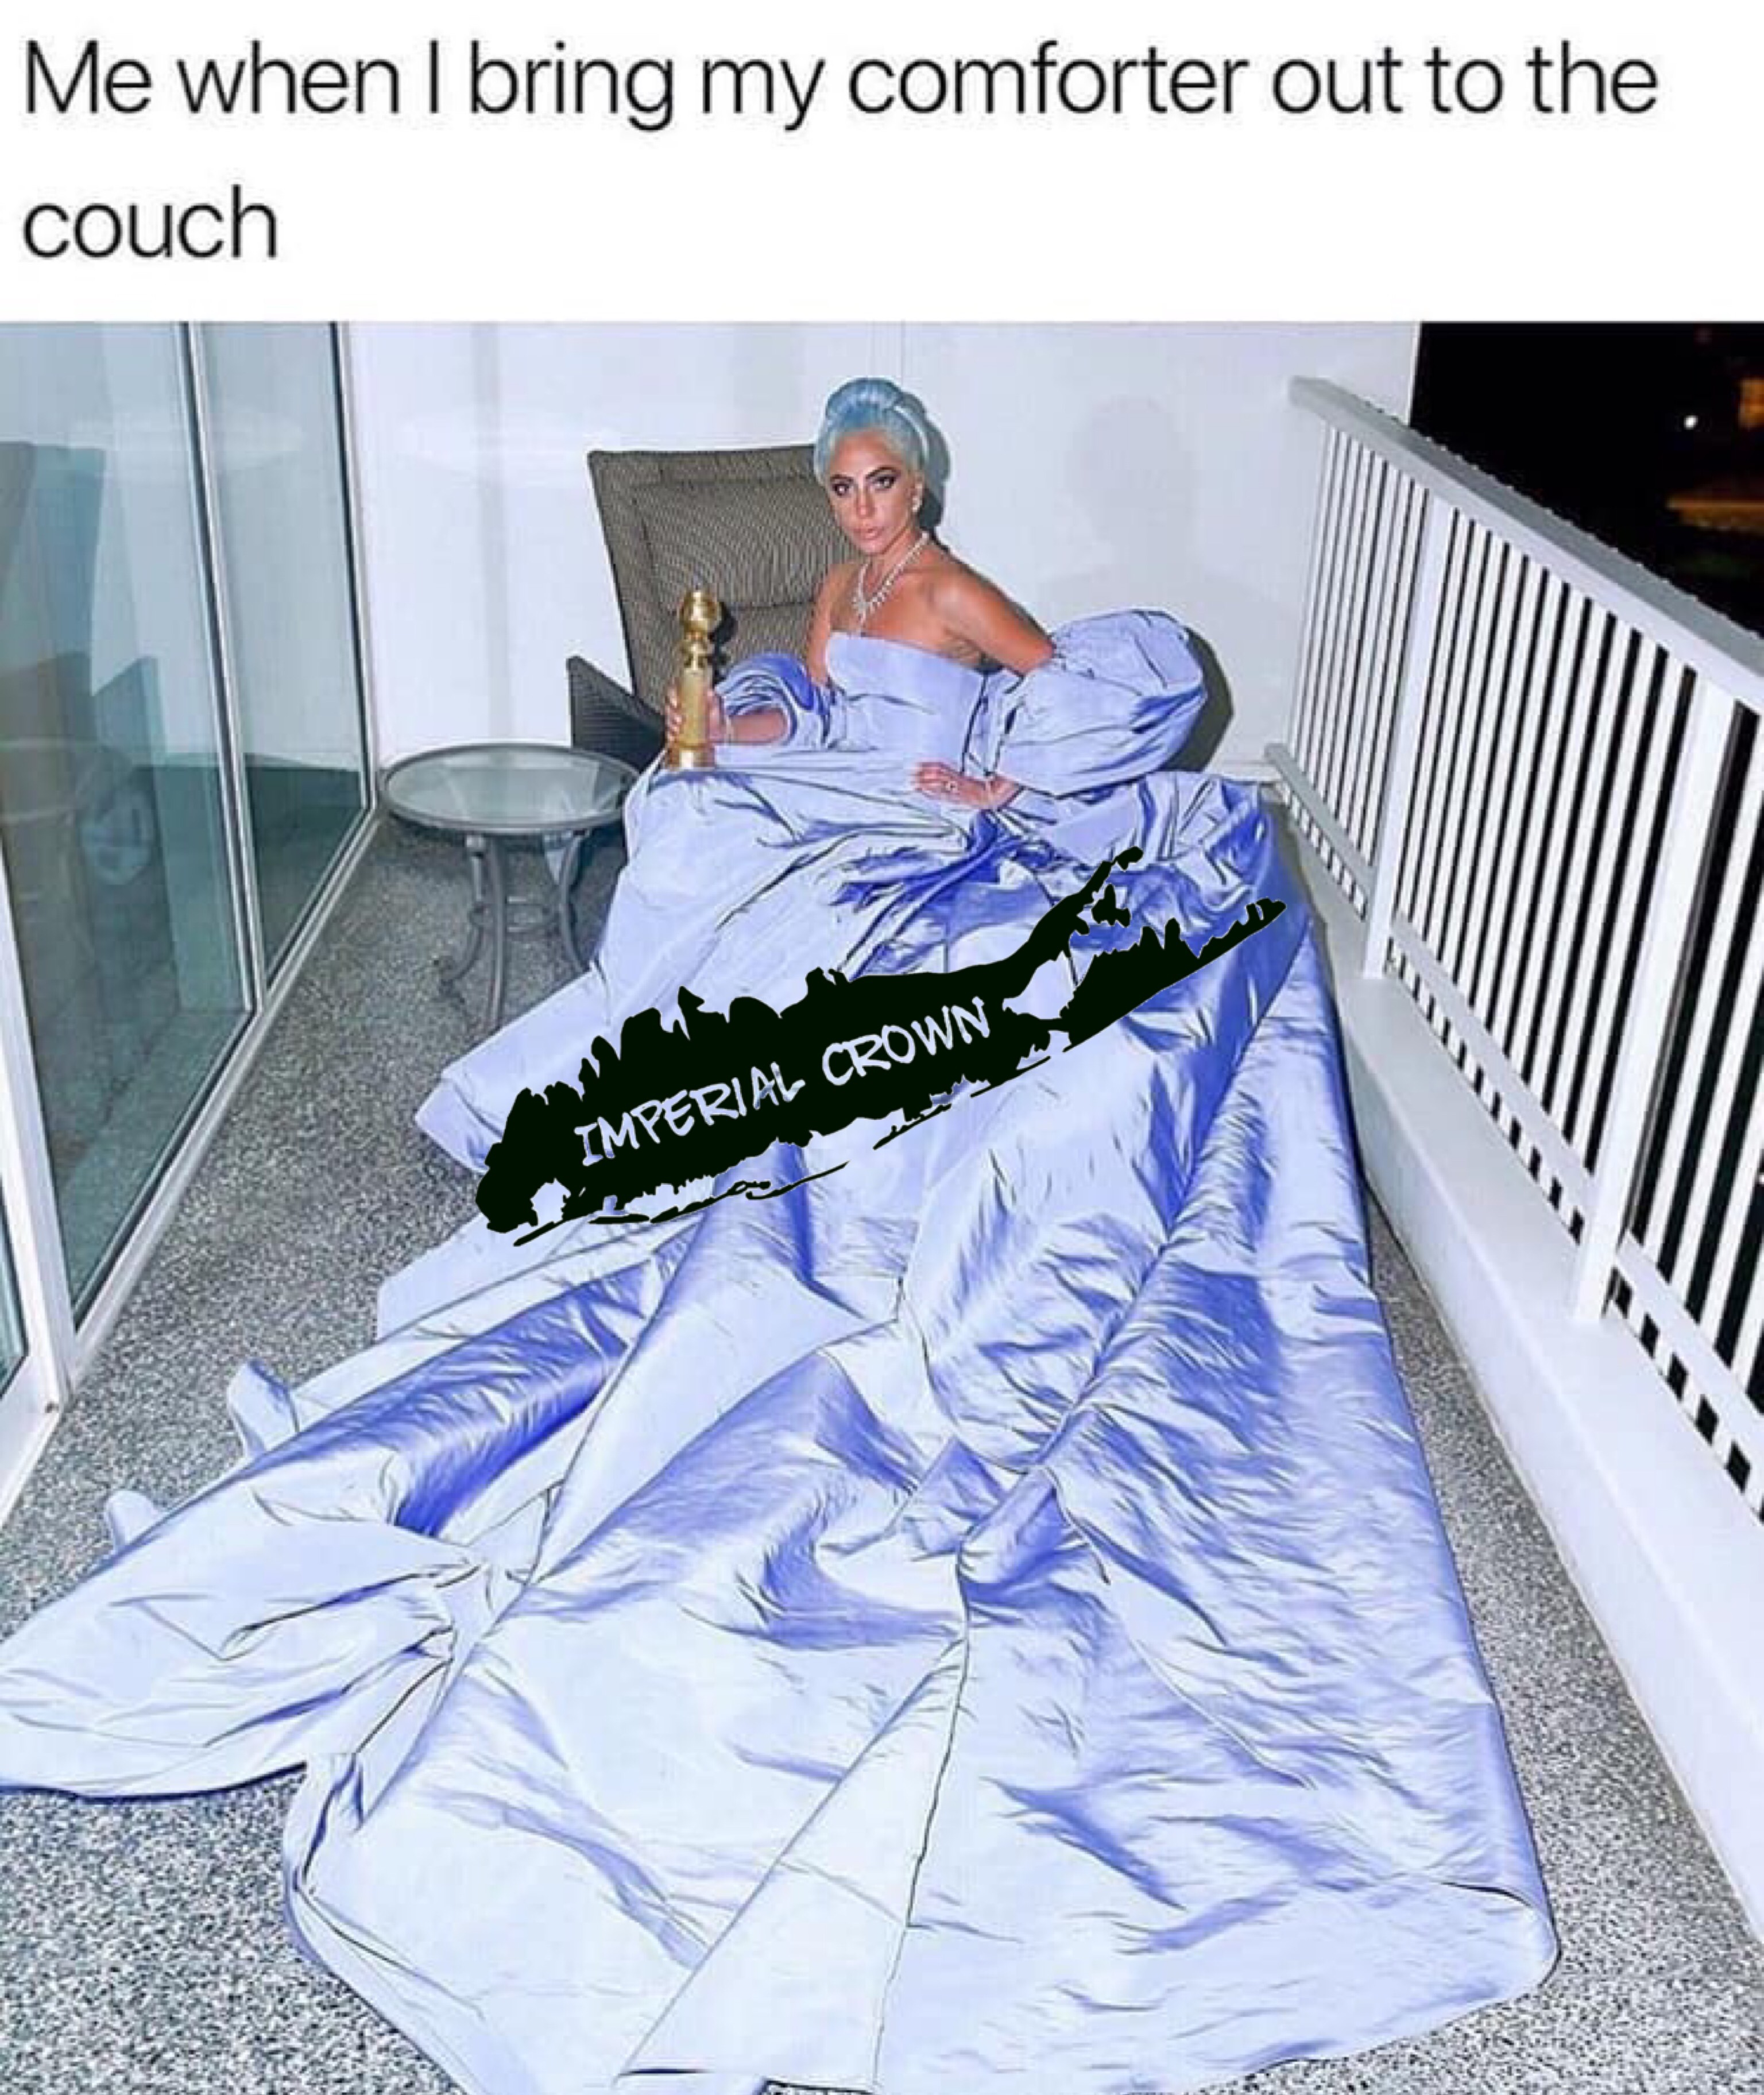 Me when I bring my comforter out to the couch